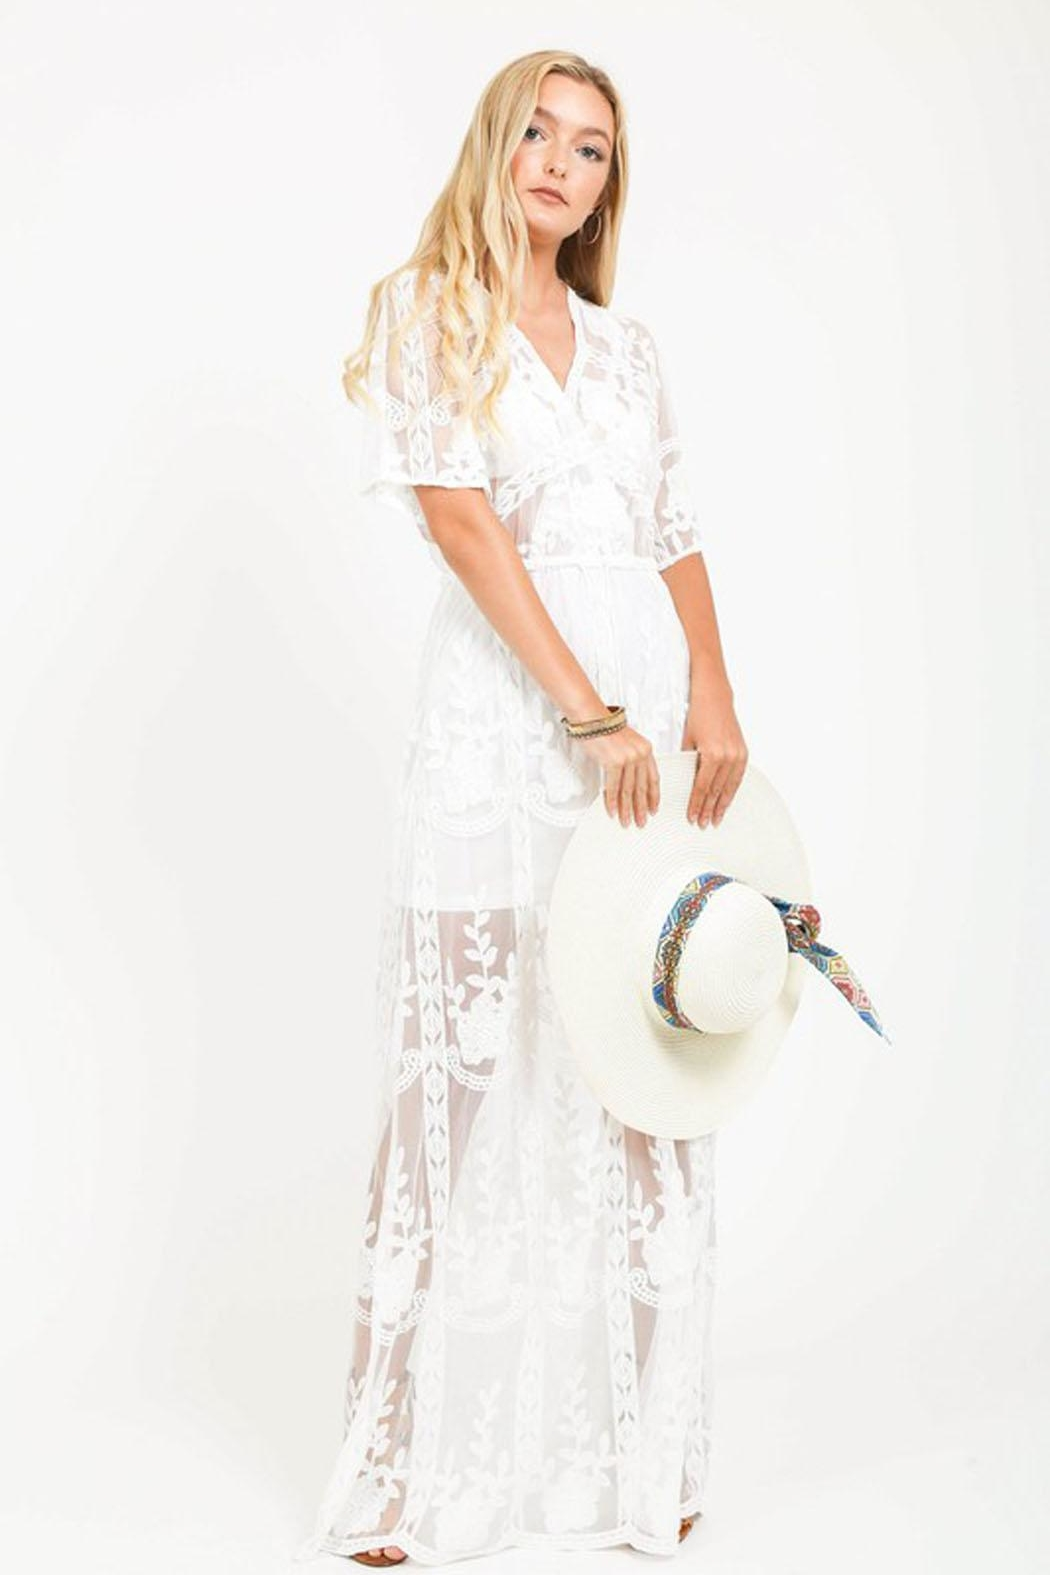 Bio Sheer Maxi Dress from Brooklyn by BB Collective — Shoptiques